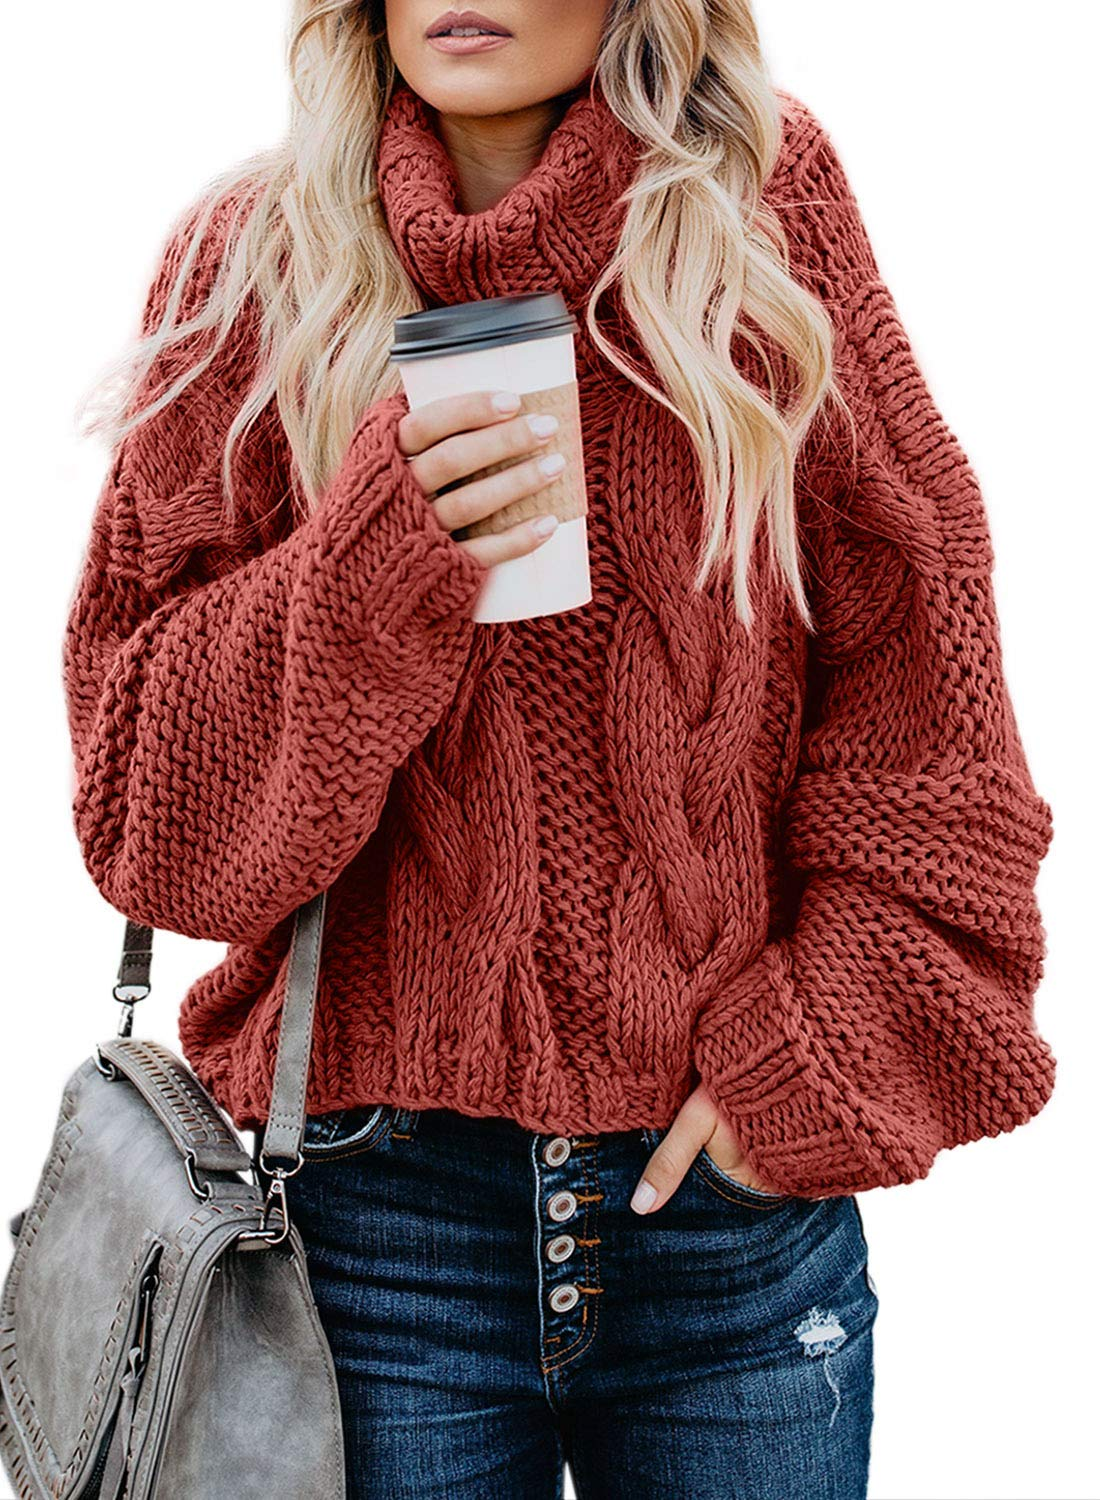 Asvivid Womens Winter Warm Turtleneck Balloon Long Sleeve Sweater Casual Oversized Loose Fit Cotton Sweater Jumper Tops M Red by Asvivid